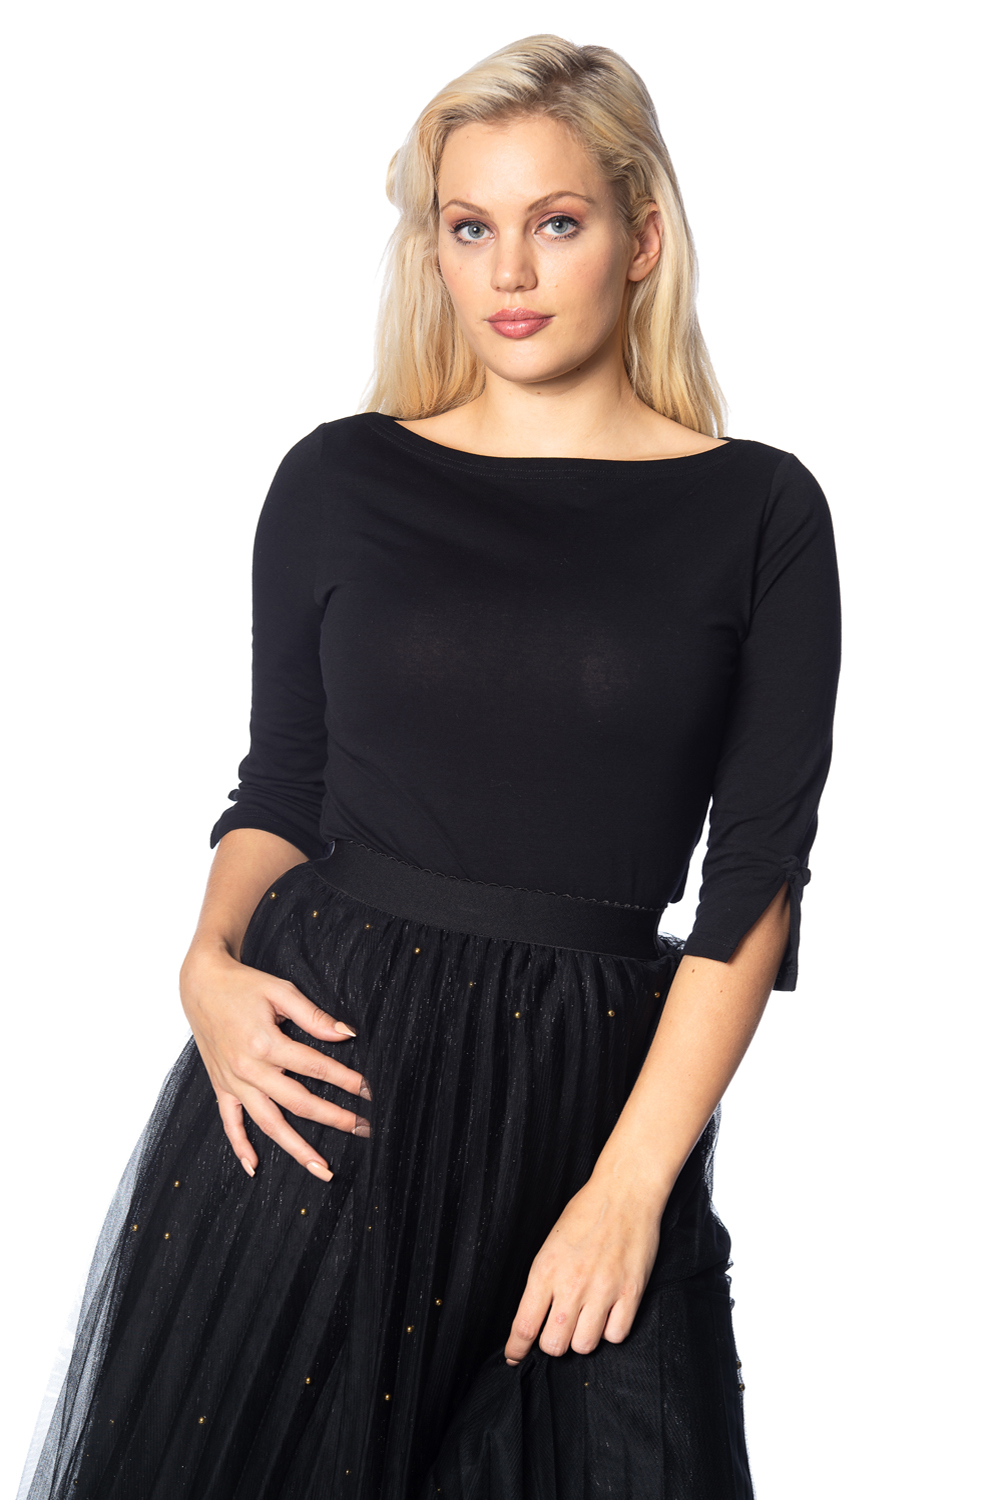 Banned Retro 50s Oonagh Black Top